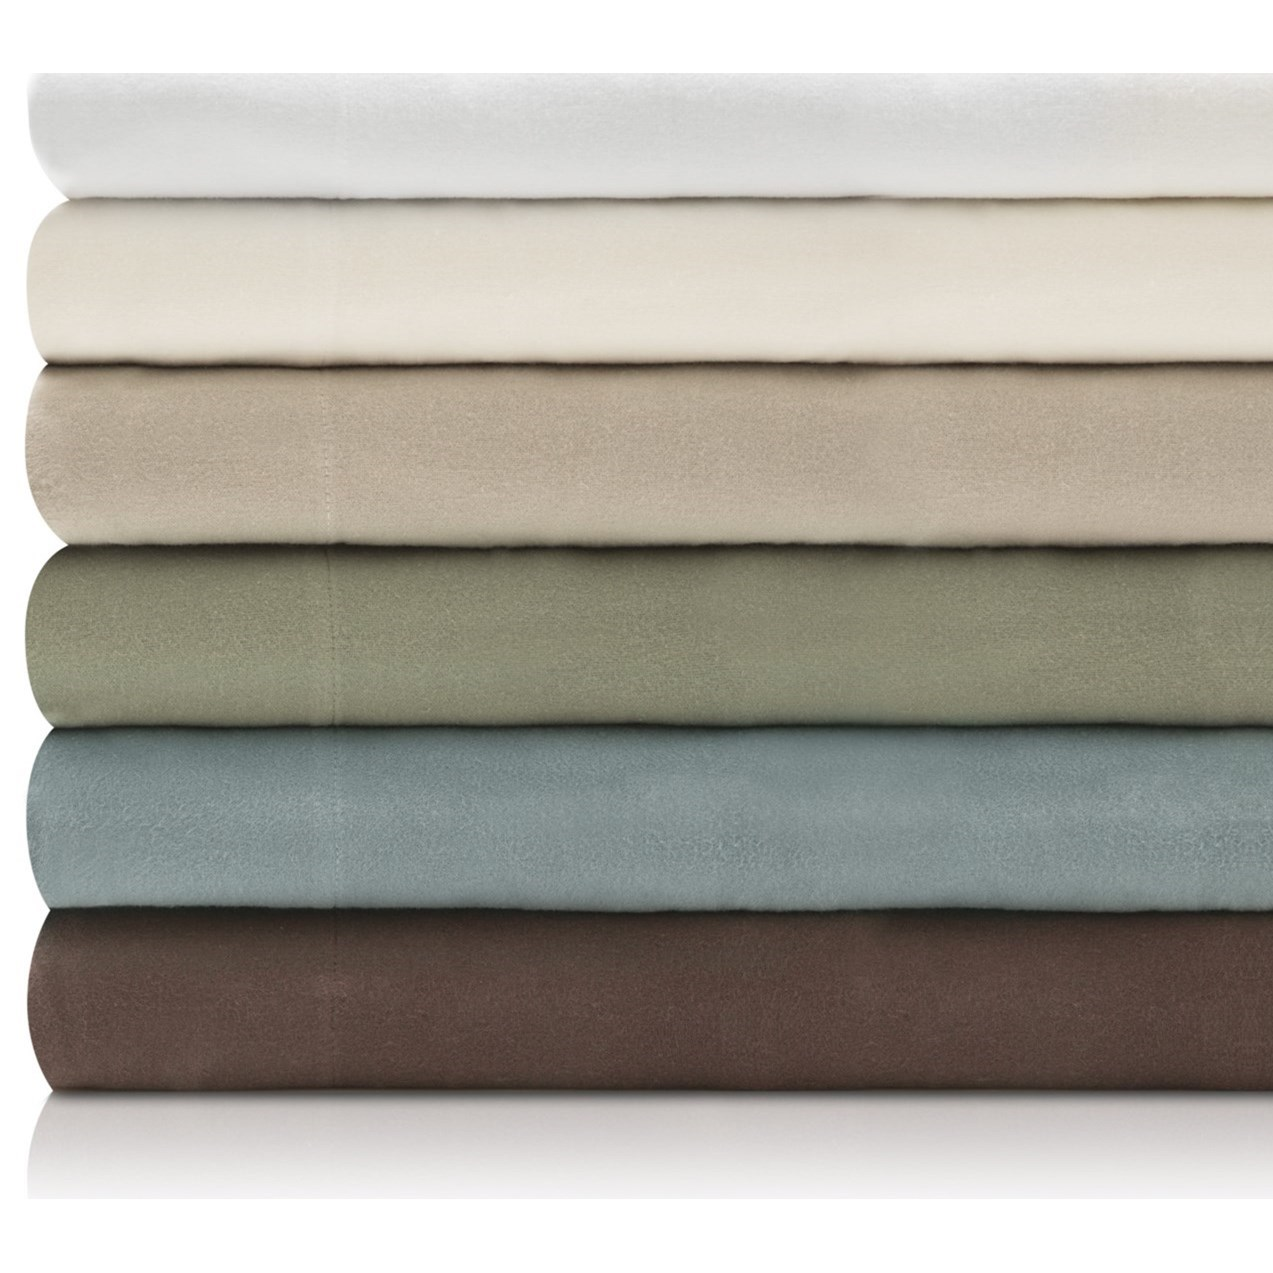 Malouf Portuguese Flannel King Woven™ Portuguese Flannel Pillowcases  - Item Number: WO19KKPAFC